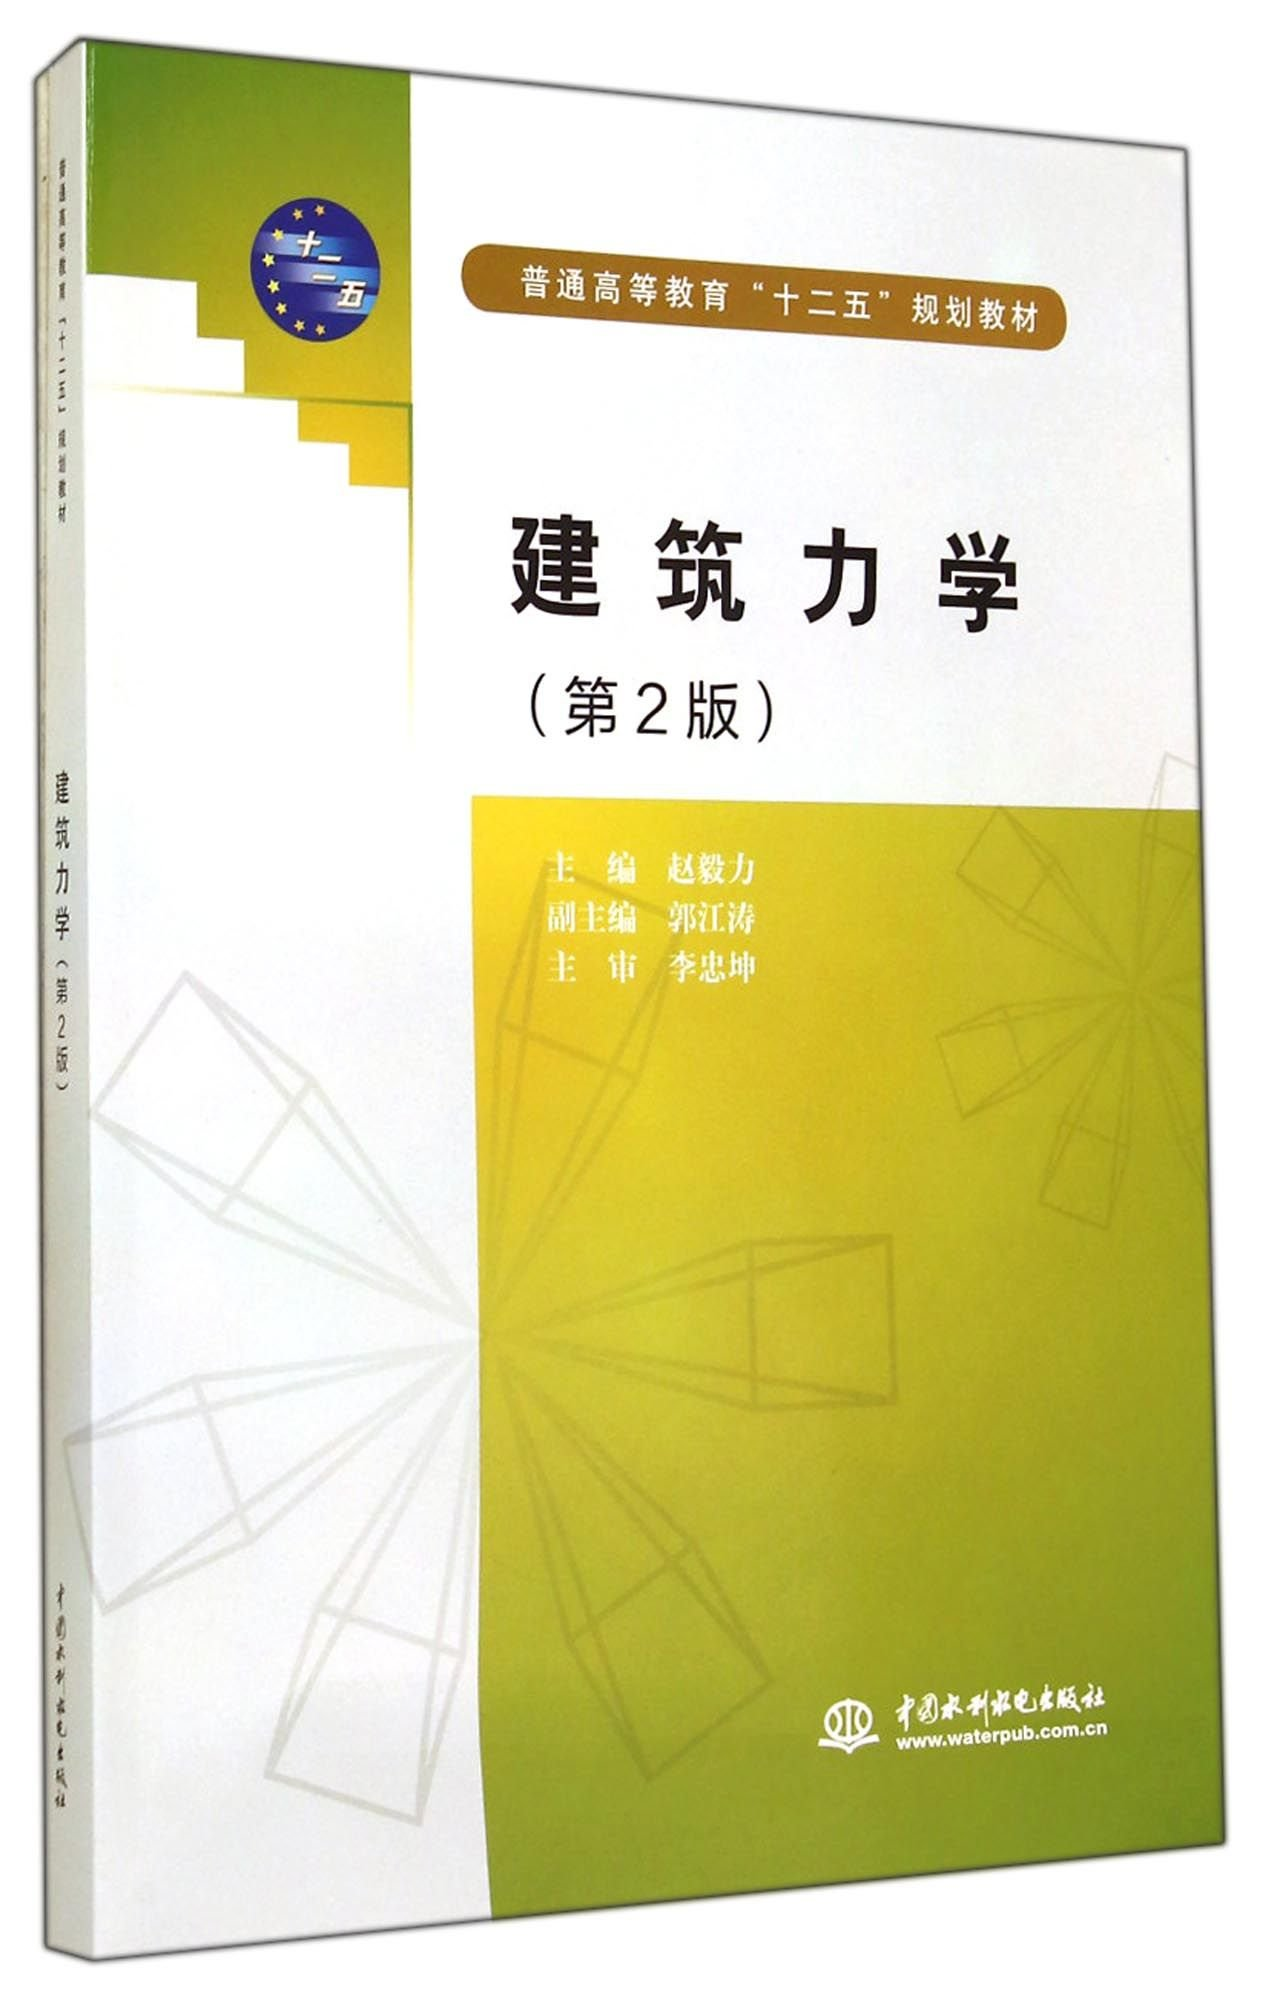 Read Online Building Mechanics (2nd Edition) (general higher education. second five planning materials)(Chinese Edition) pdf